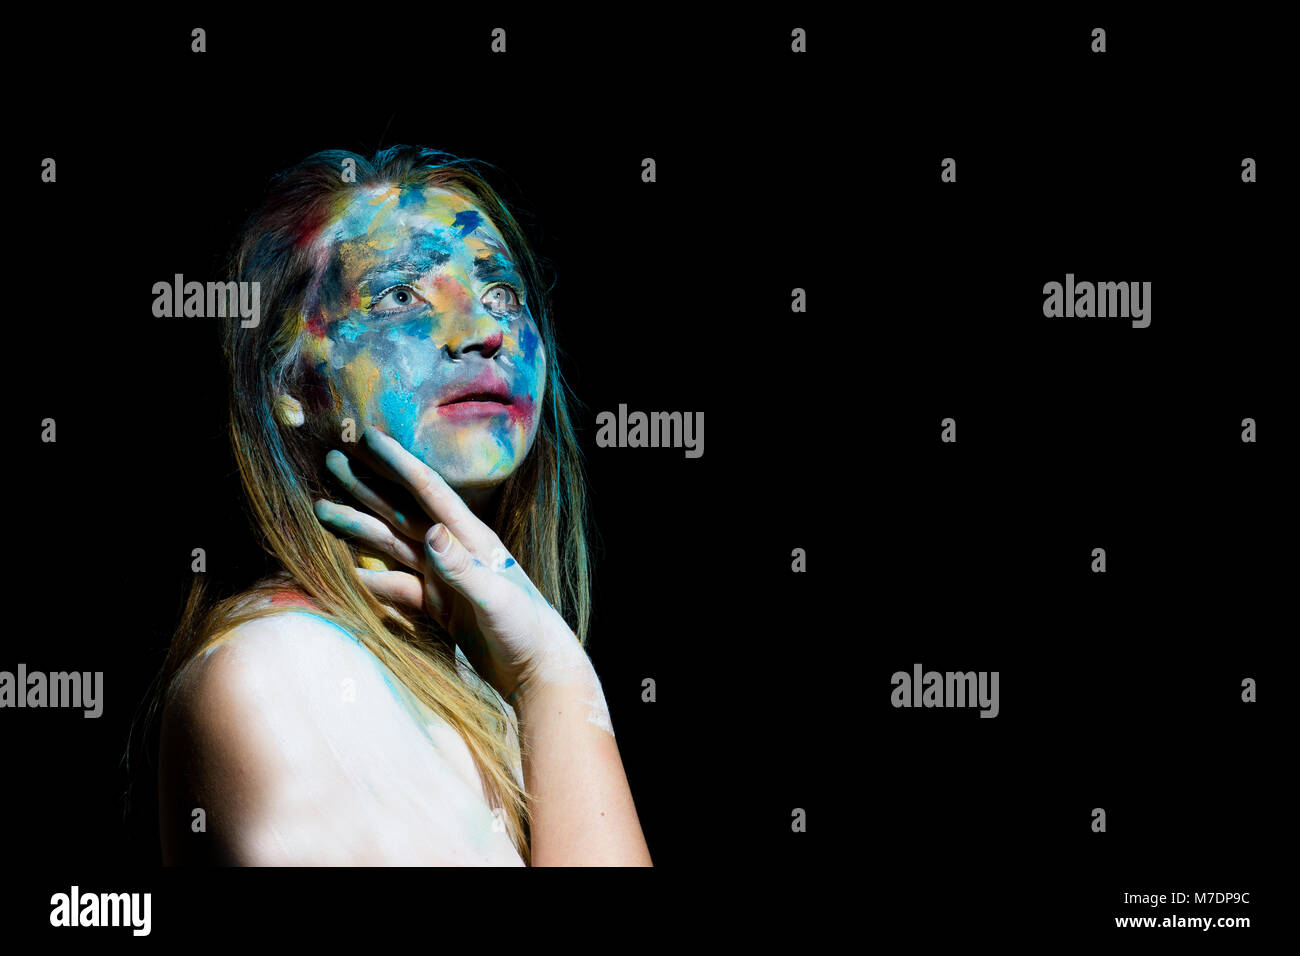 A woman with her face painted in an abstract style poses for the camera - Stock Image